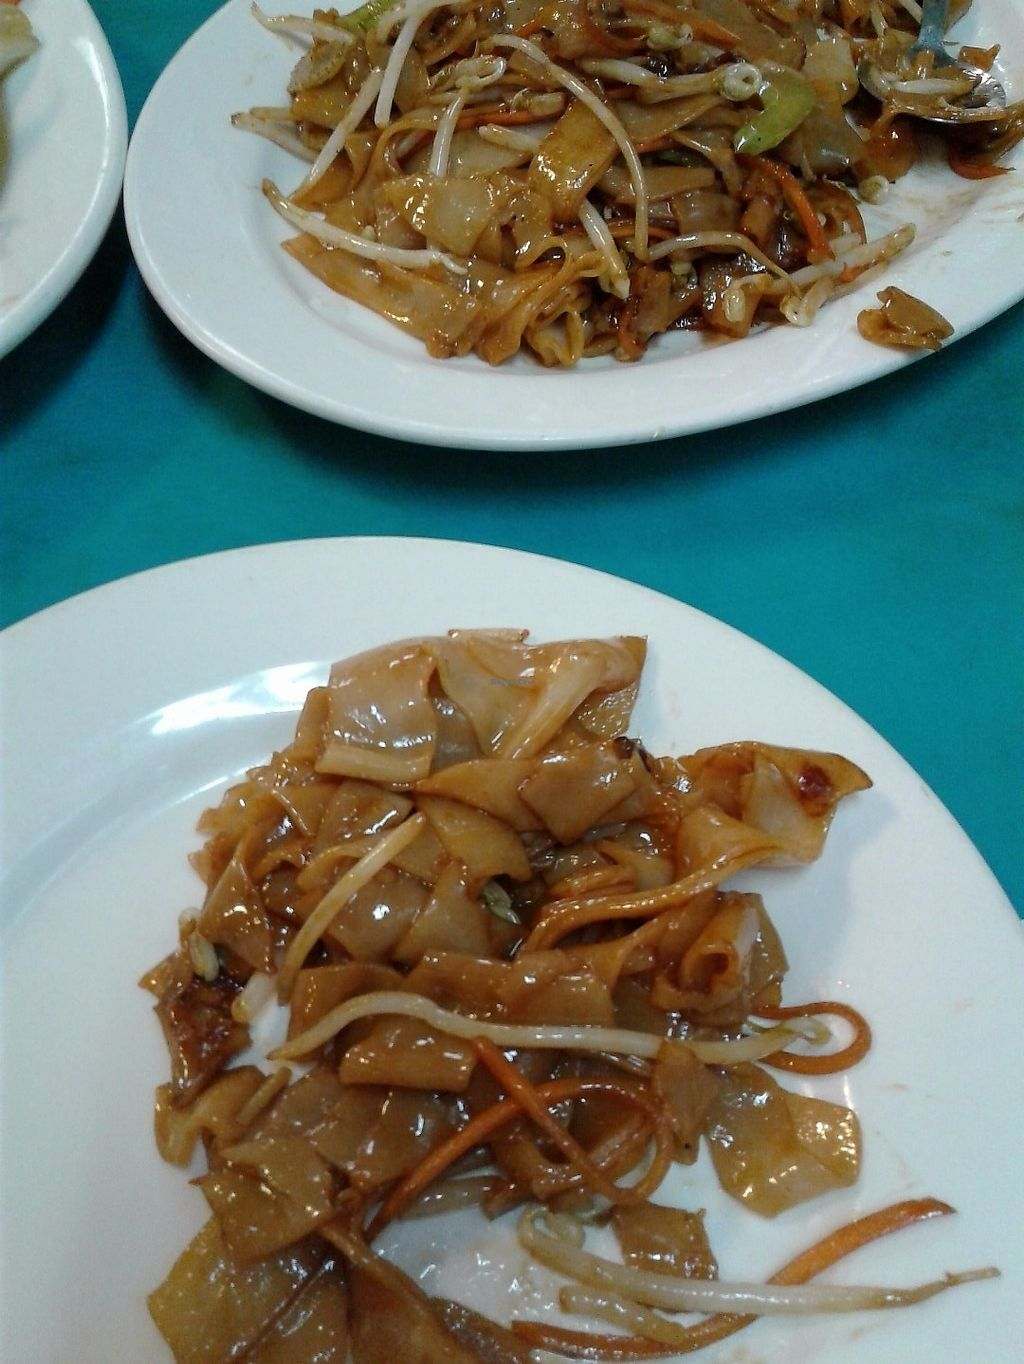 """Photo of Lucky Creation Vegetarian  by <a href=""""/members/profile/anastronomy"""">anastronomy</a> <br/>Chow mein <br/> June 14, 2017  - <a href='/contact/abuse/image/1563/268937'>Report</a>"""